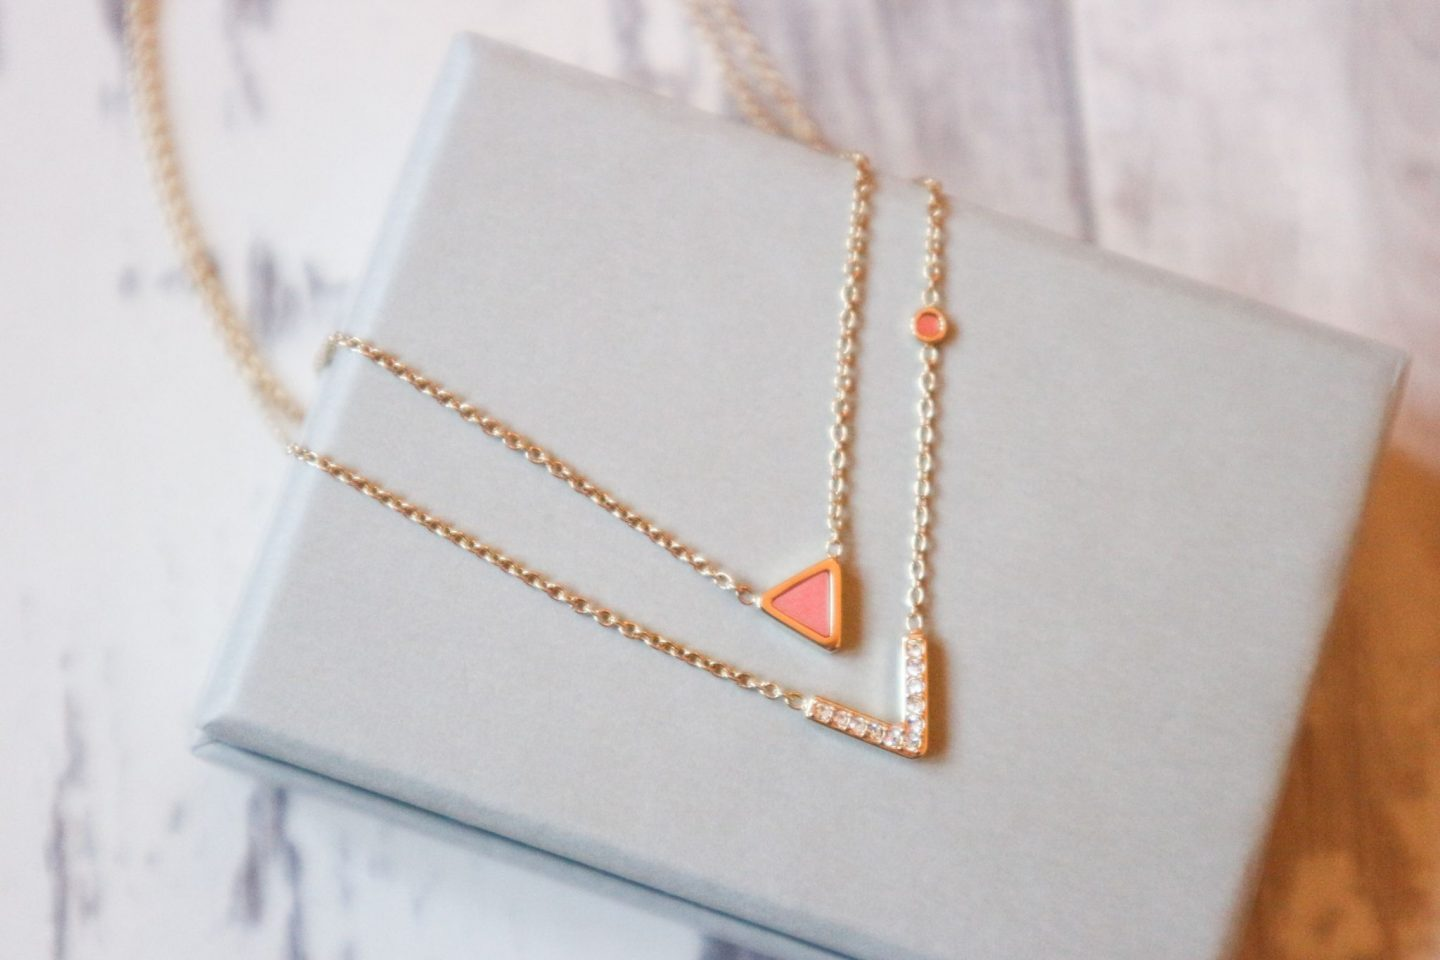 triangle necklace from Fossil